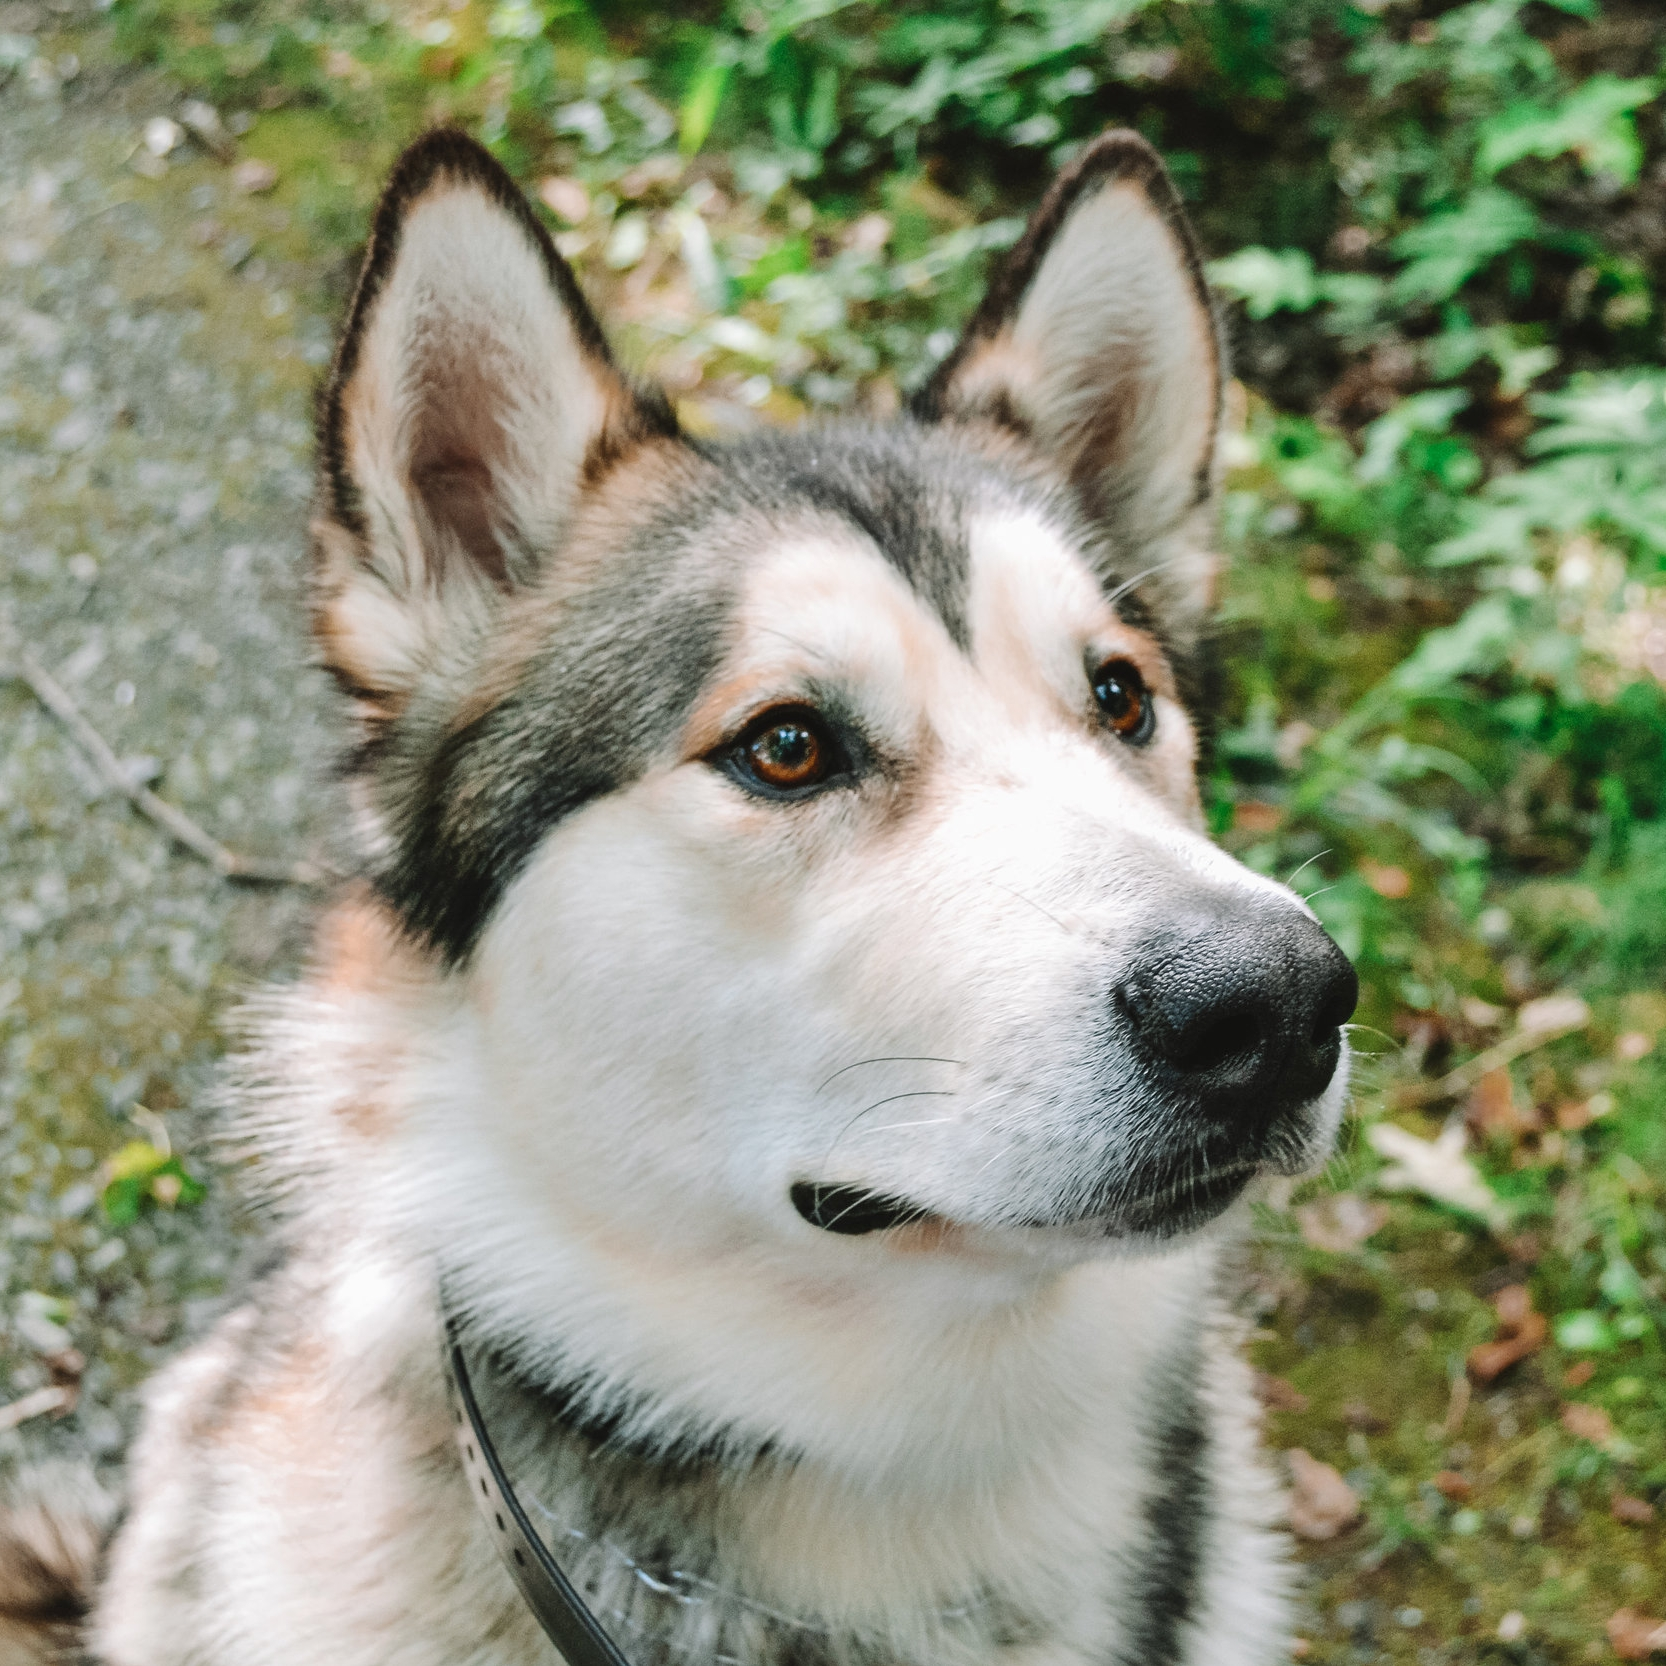 Goliath - Goliath is a one year old Alaskan Malamute. He enjoys hiking, barking at his humans, tormenting his cat siblings, peanut butter, and weather below 60 degrees. He also has his own instagram.